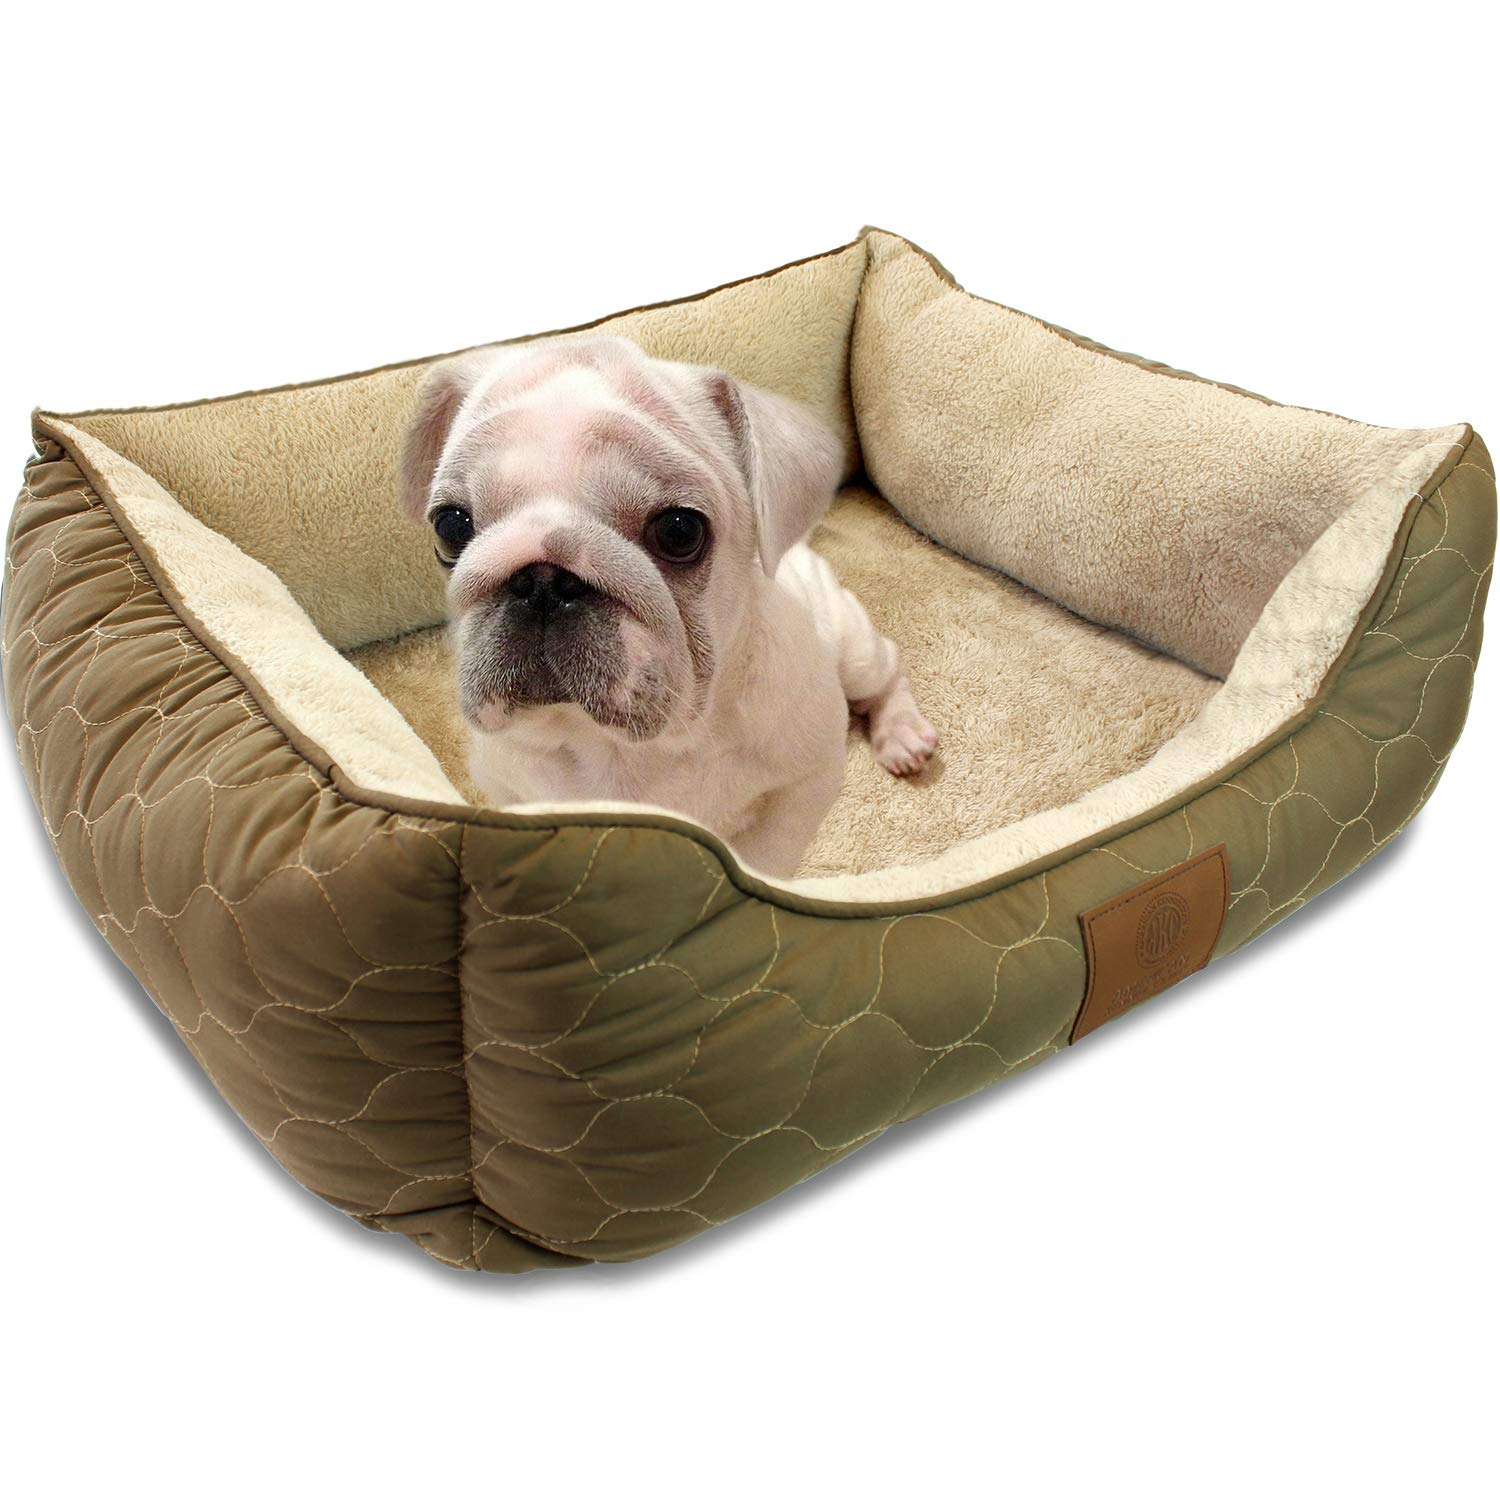 Amazon.com: Cama American Kennel Club para mascota, redonda ...